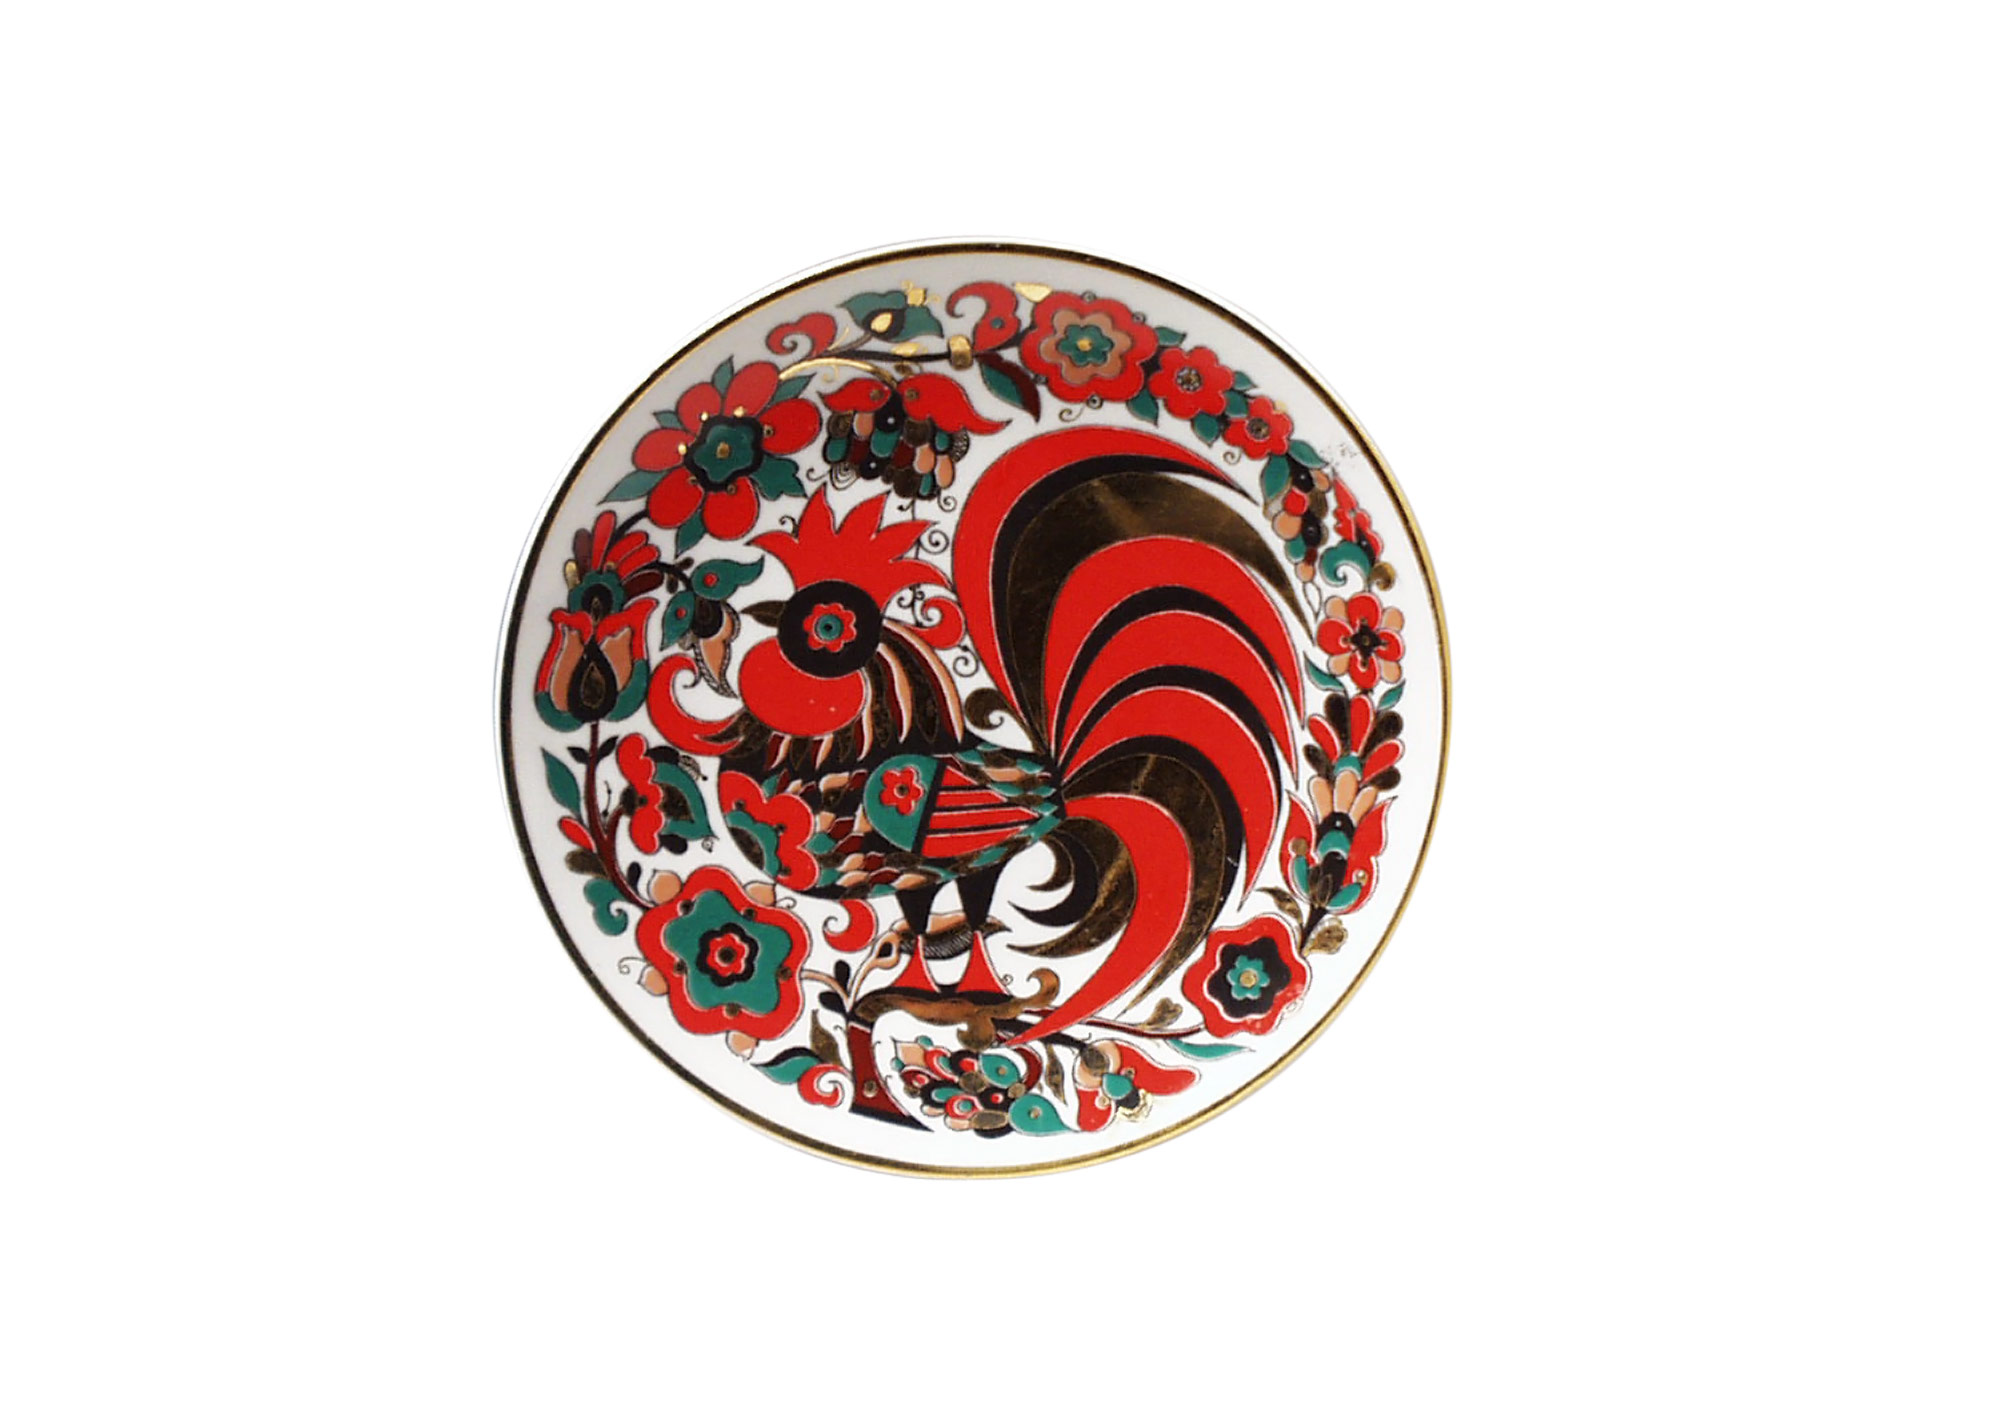 Red rooster decorative plate 8 porcelain plates for Decoration plater